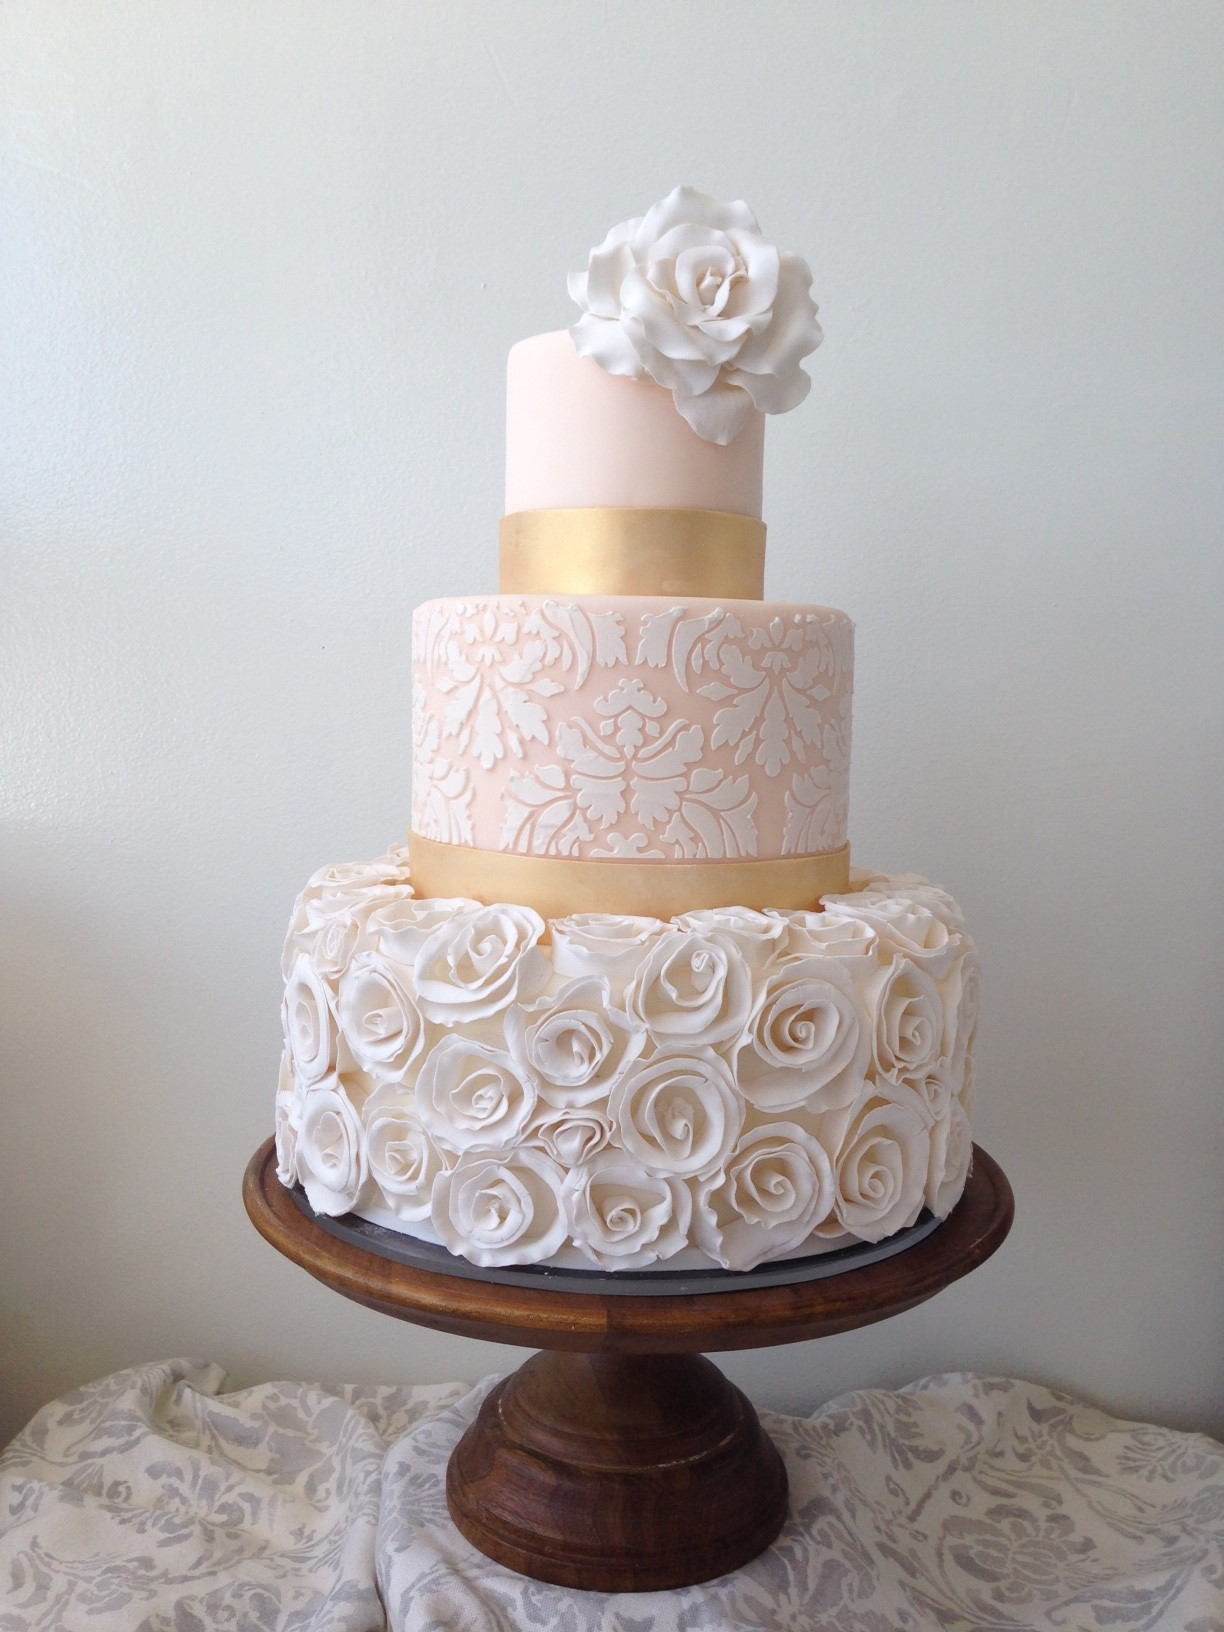 Jenny s Wedding Cakes Our cake designs are often inspired by art  nature  fashion and  architecture  Every wedding has its own distinctive style  And we make your  cake to reflect